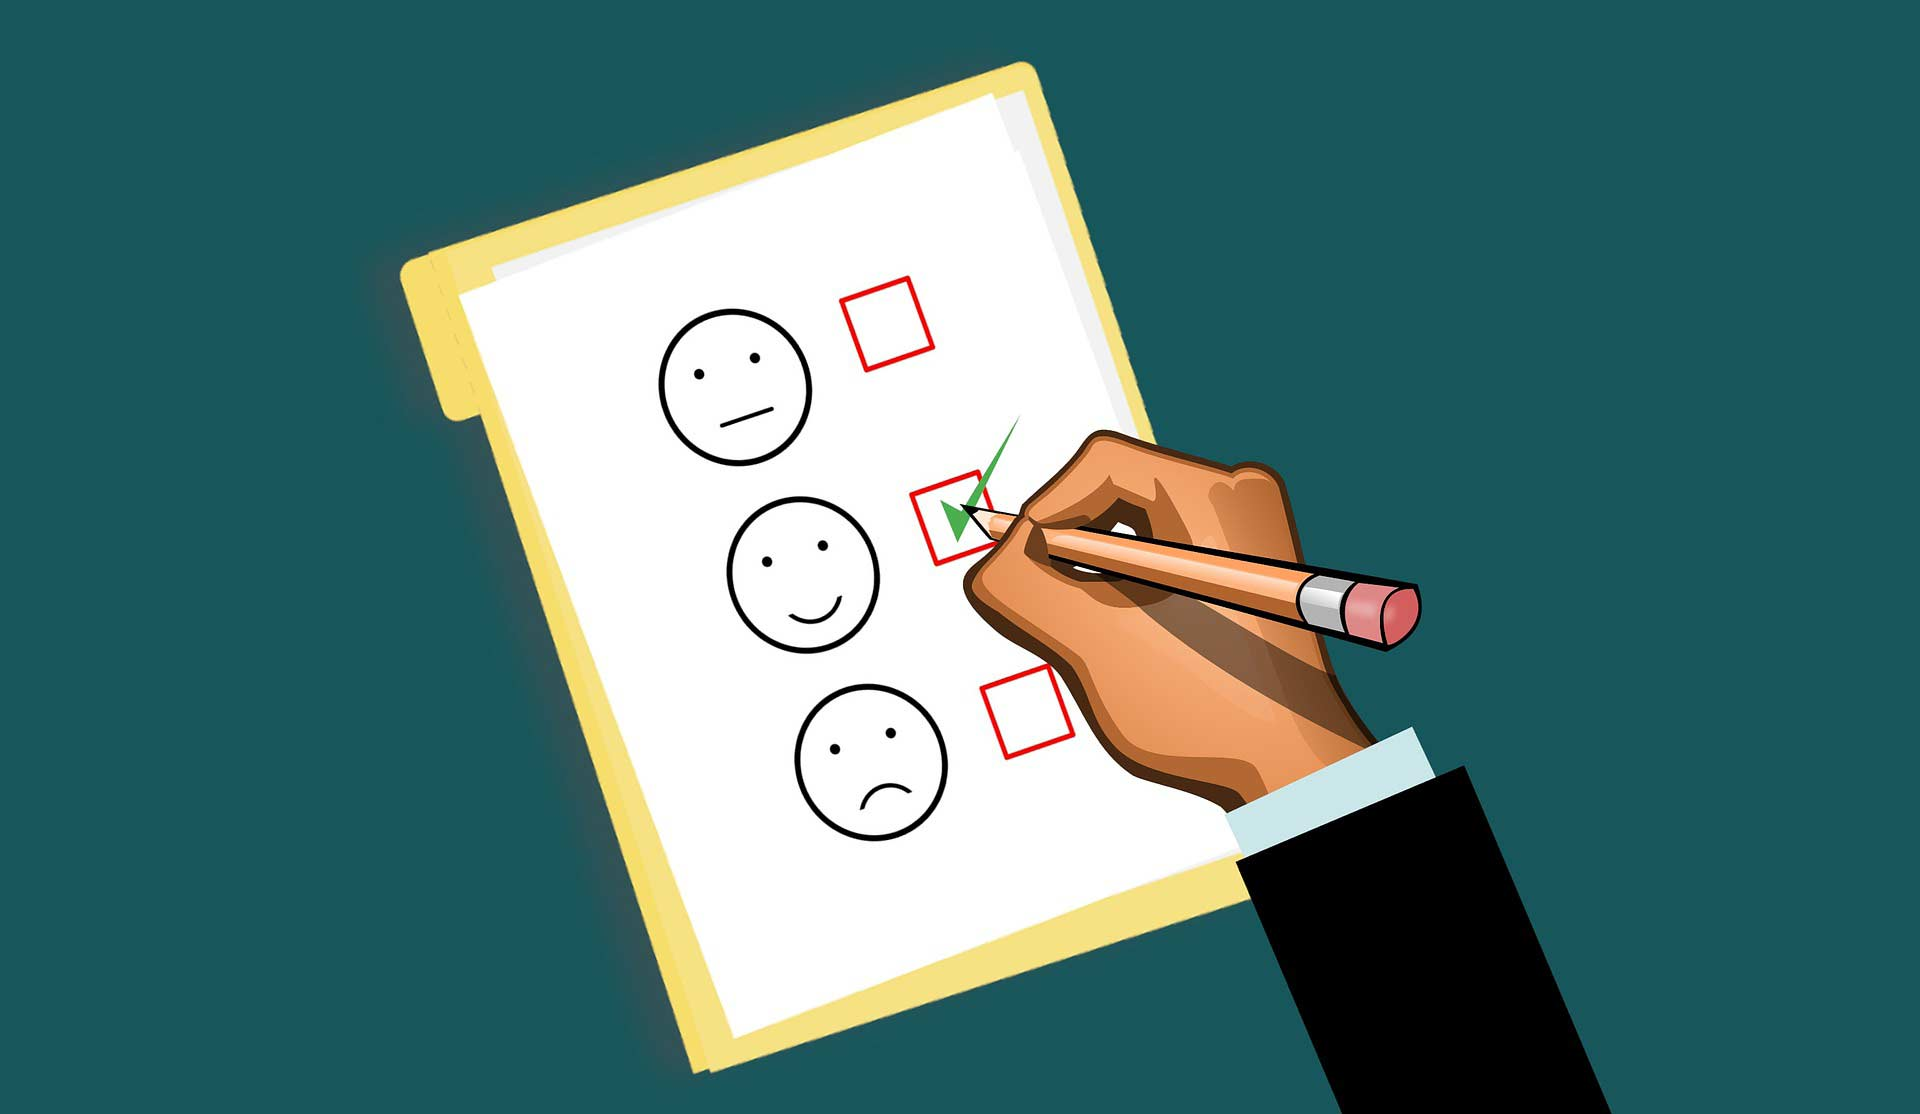 Rating scale with person checking off items